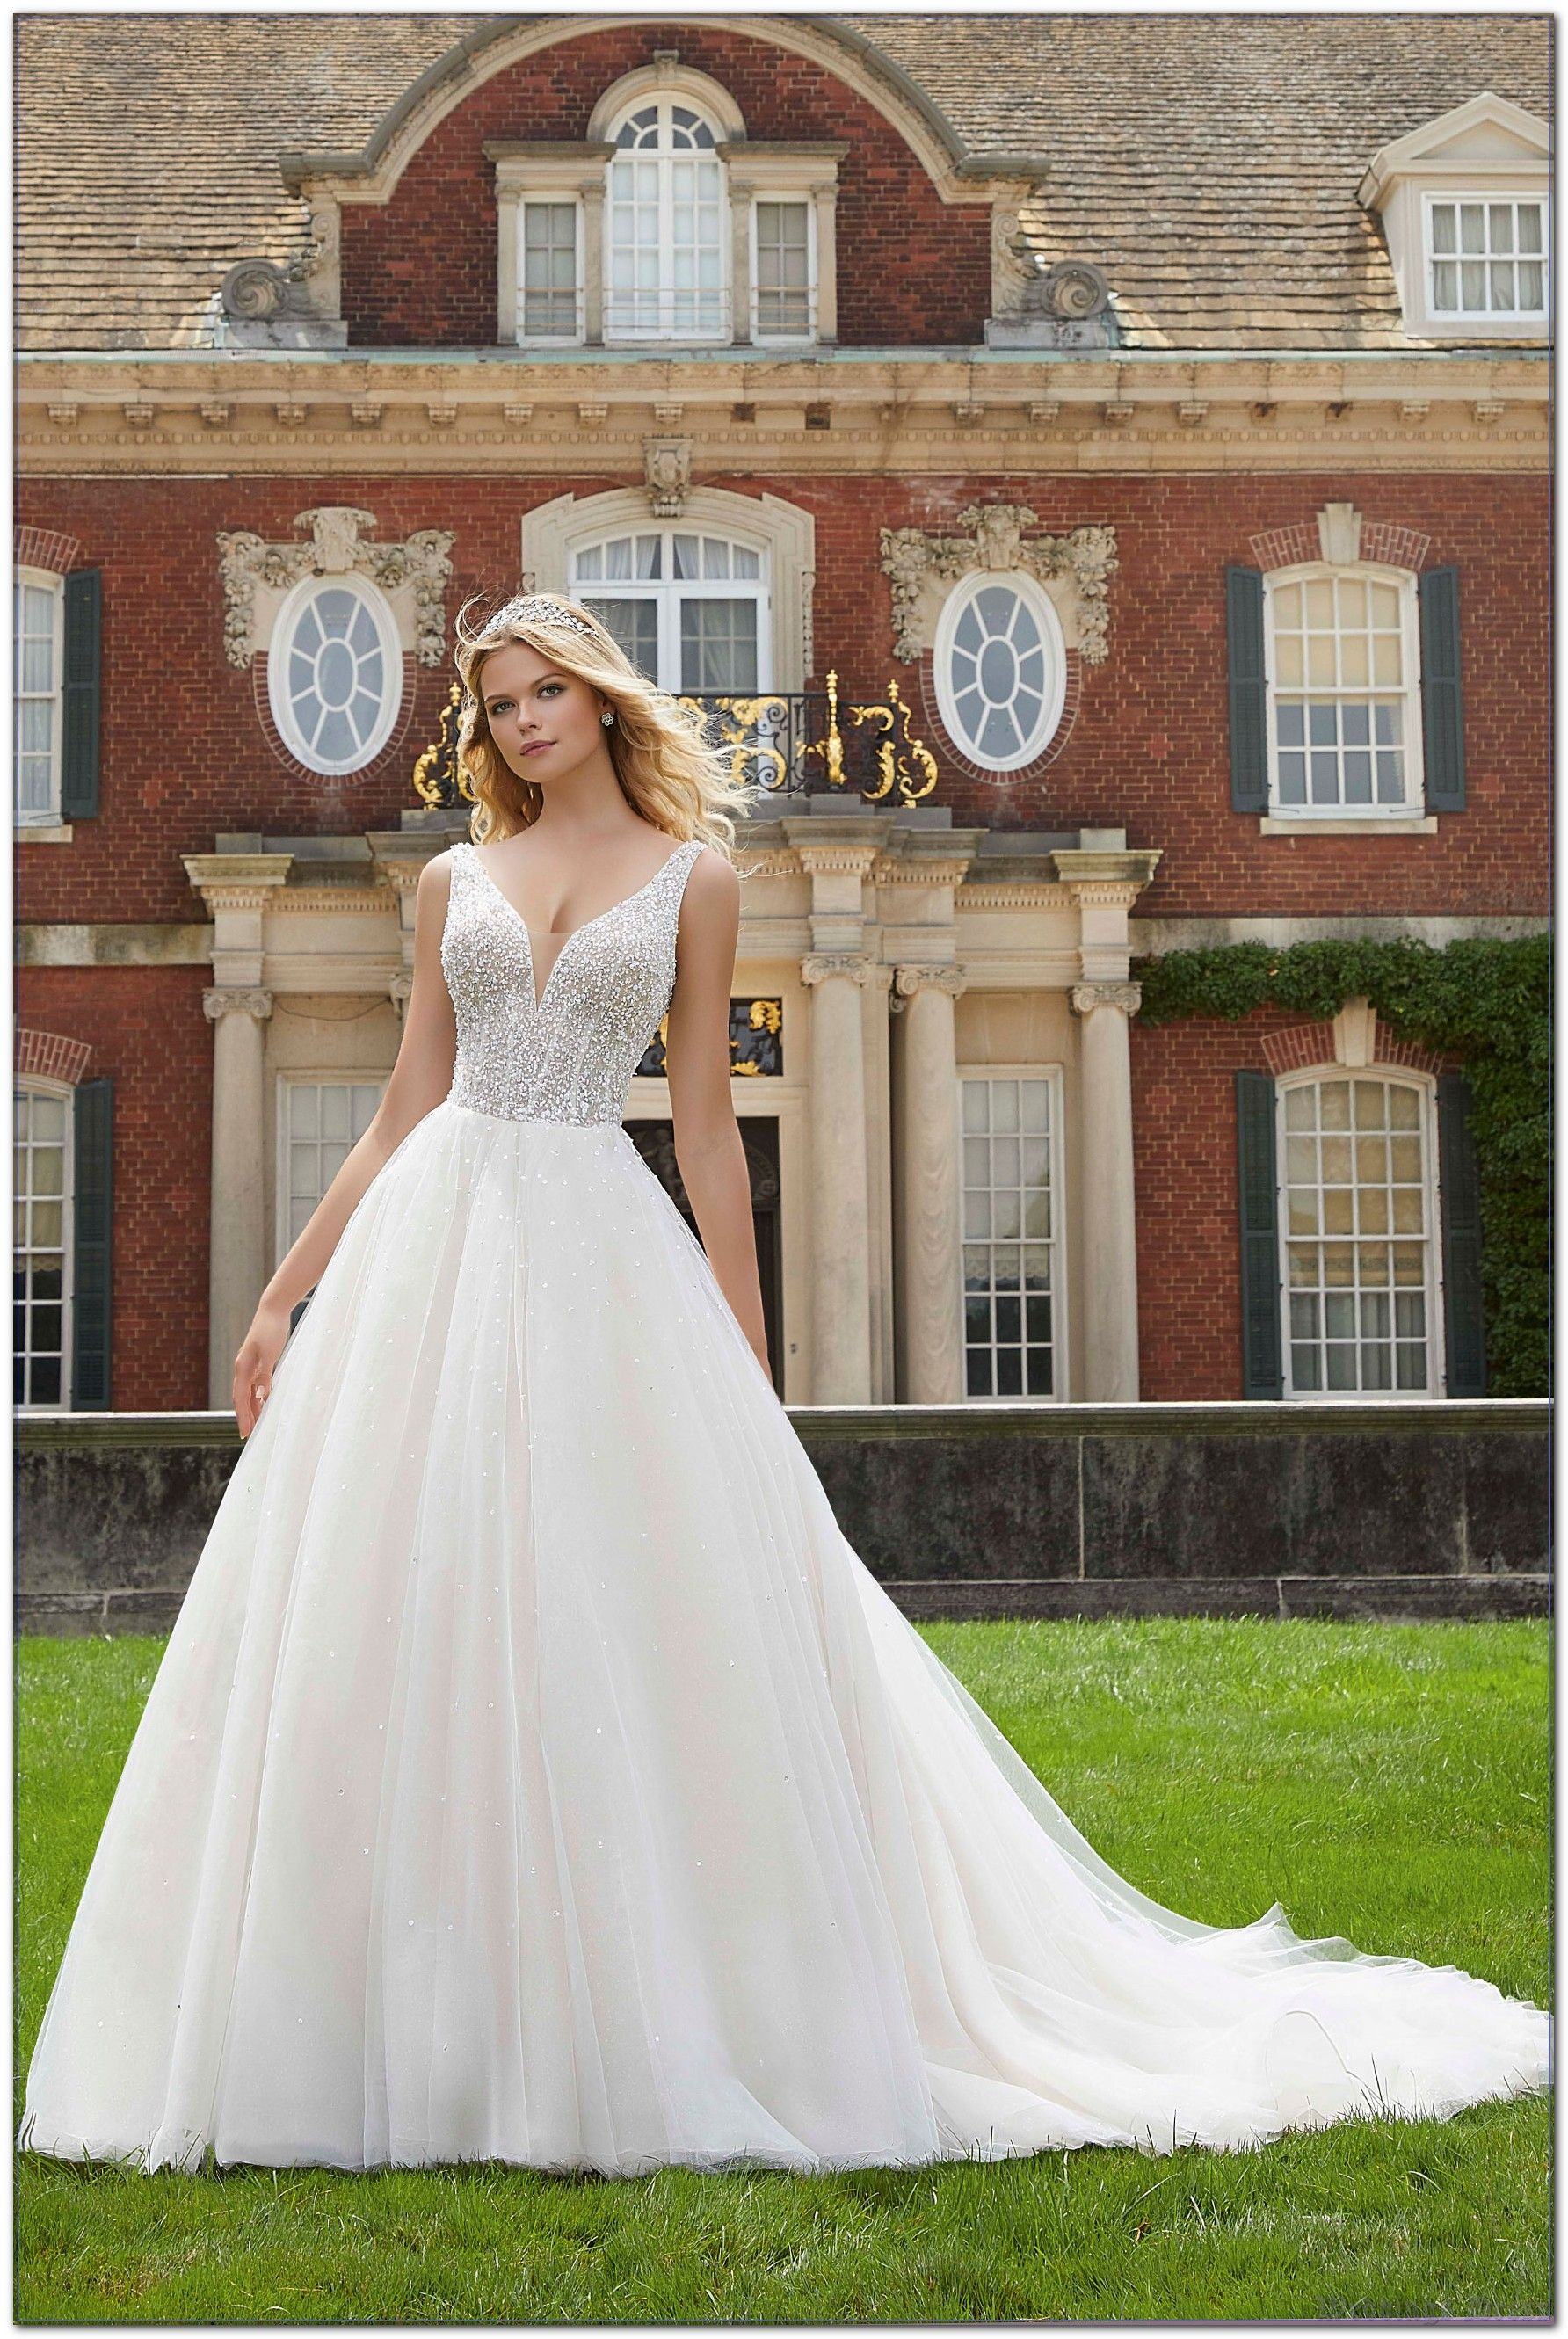 5 Things To Do Immediately About Weddings Dress